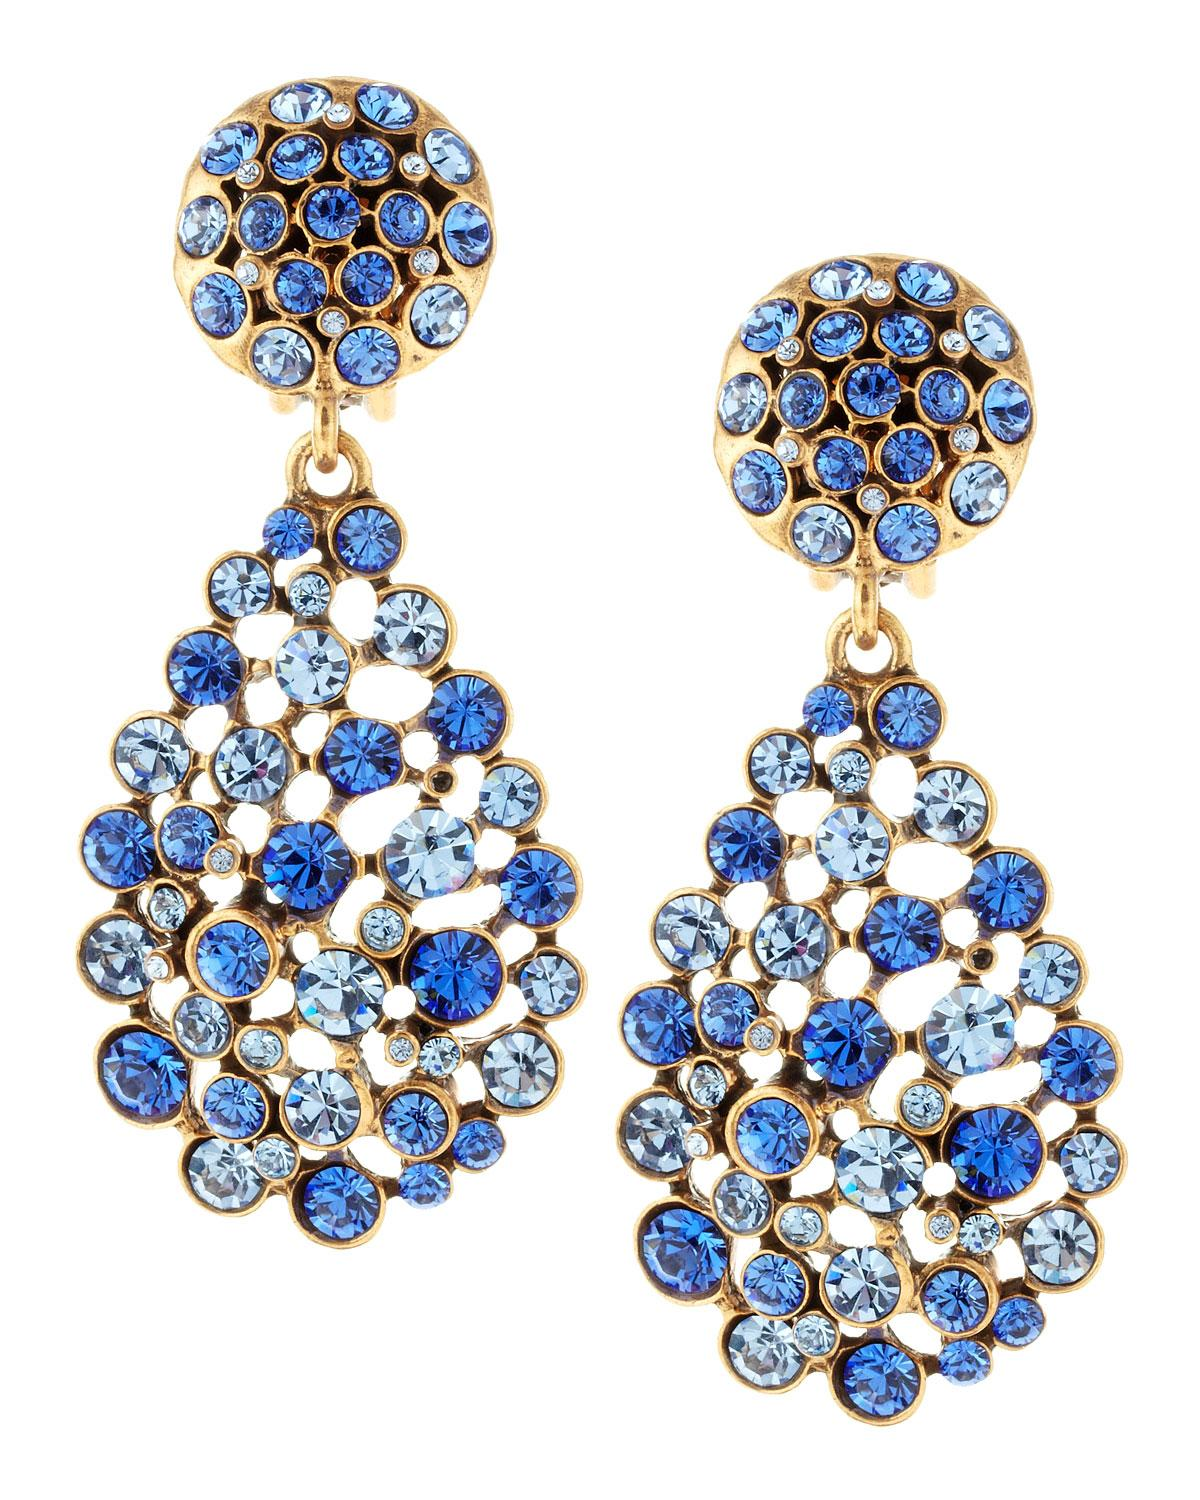 Into the blue with these @OscarPRGirl stunners, now on sale: http://t.co/ZjkhR0Kzle http://t.co/kFyzBoEHjy